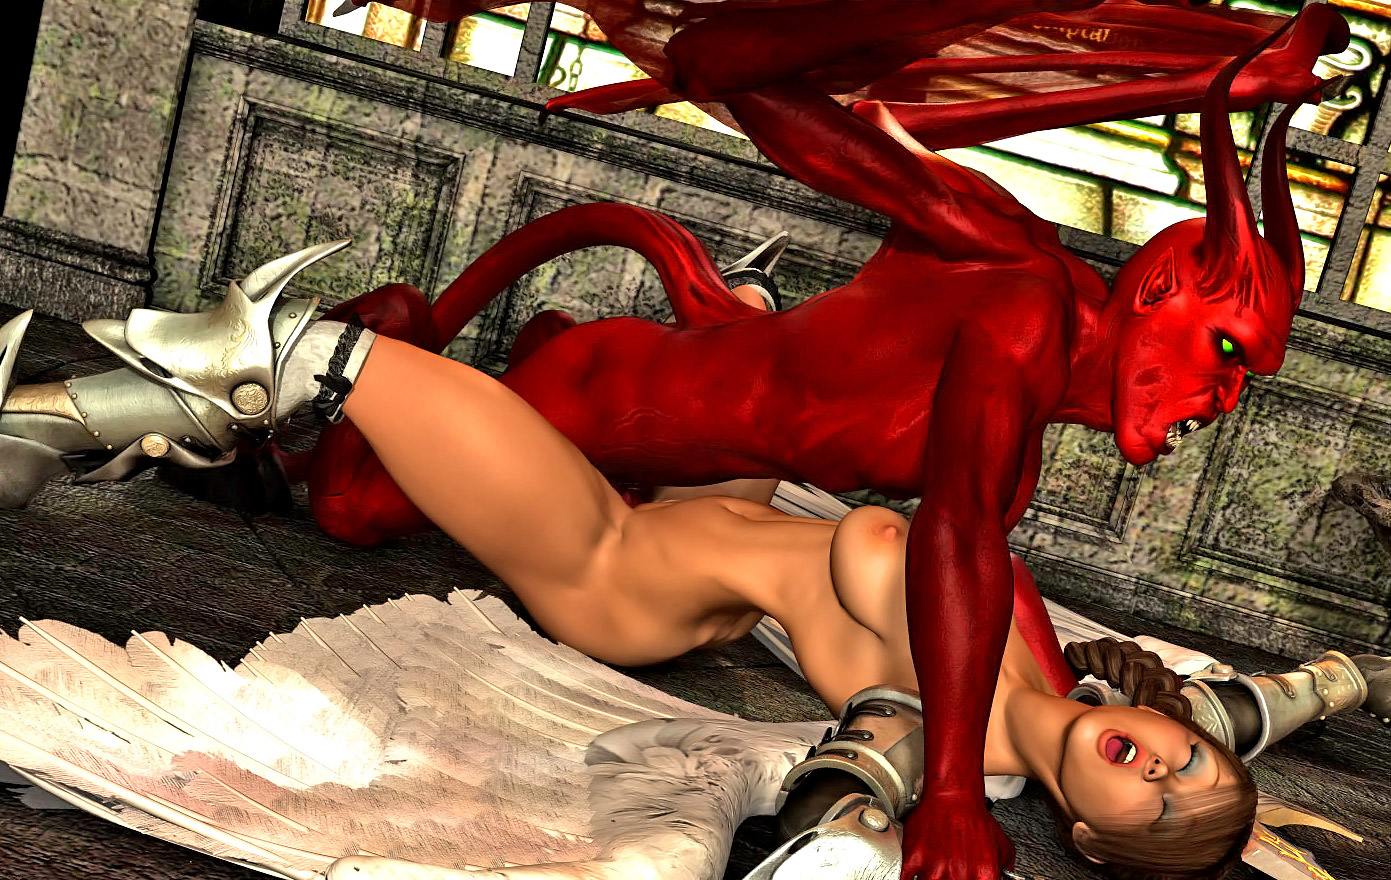 3d demon sex 3gp naked photos